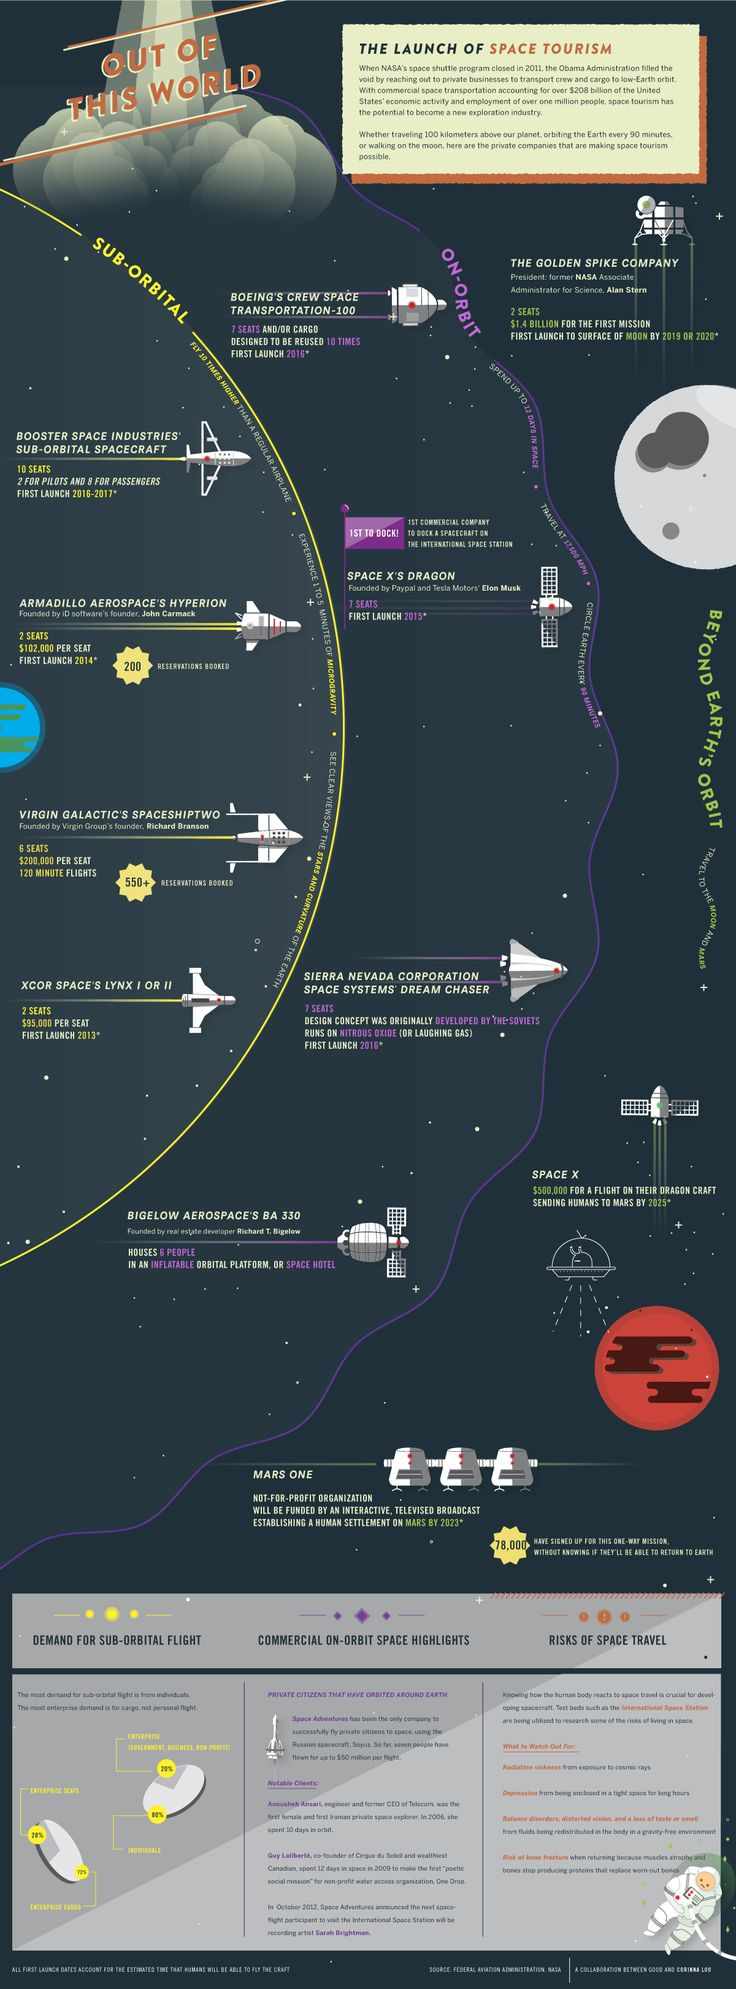 The Launch of Space Tourism